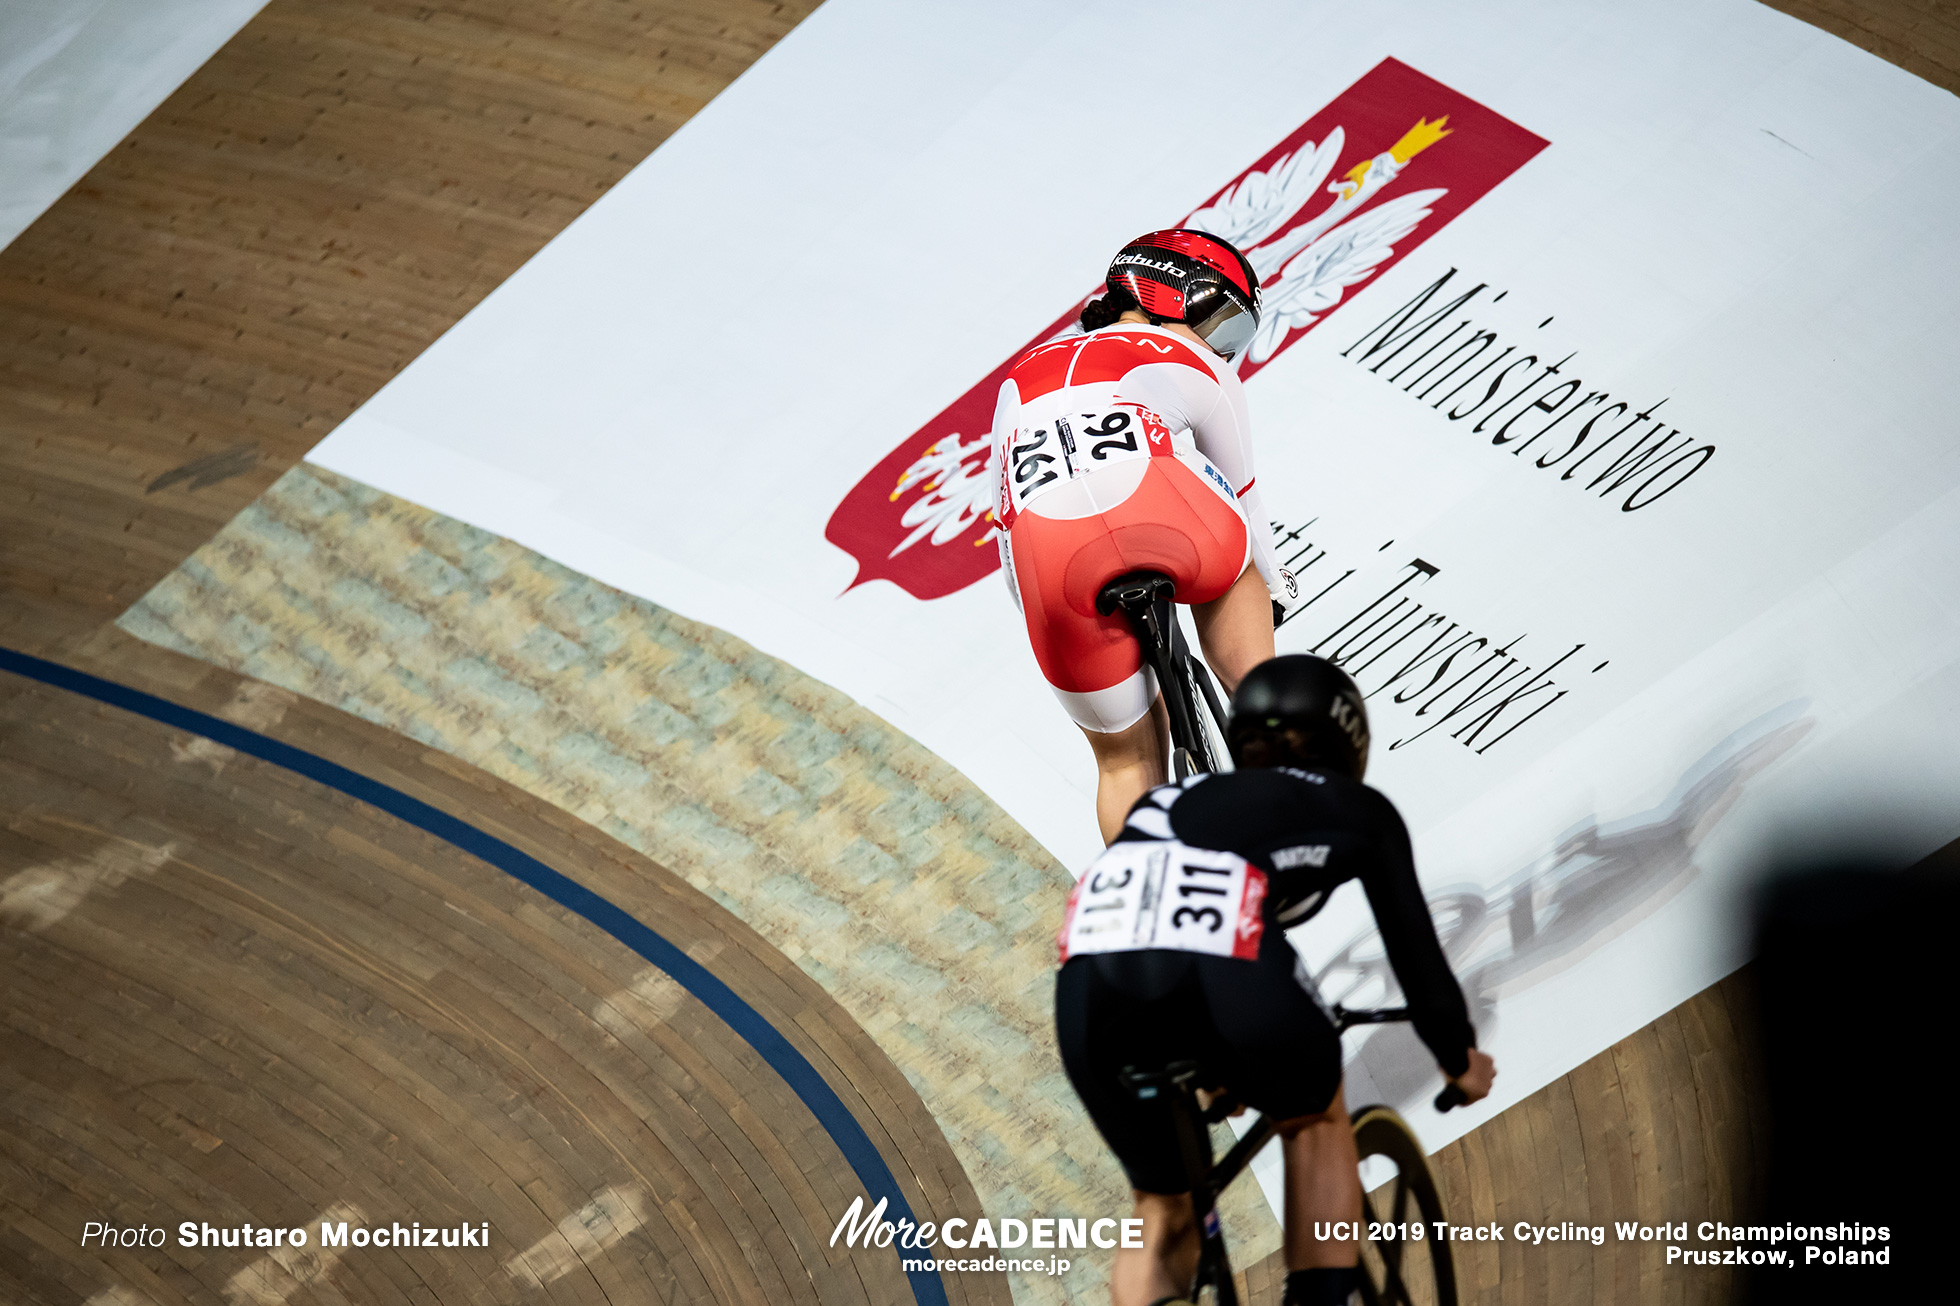 Women's Sprint 1/16 Final / 2019 Track Cycling World Championships Pruszków, Poland